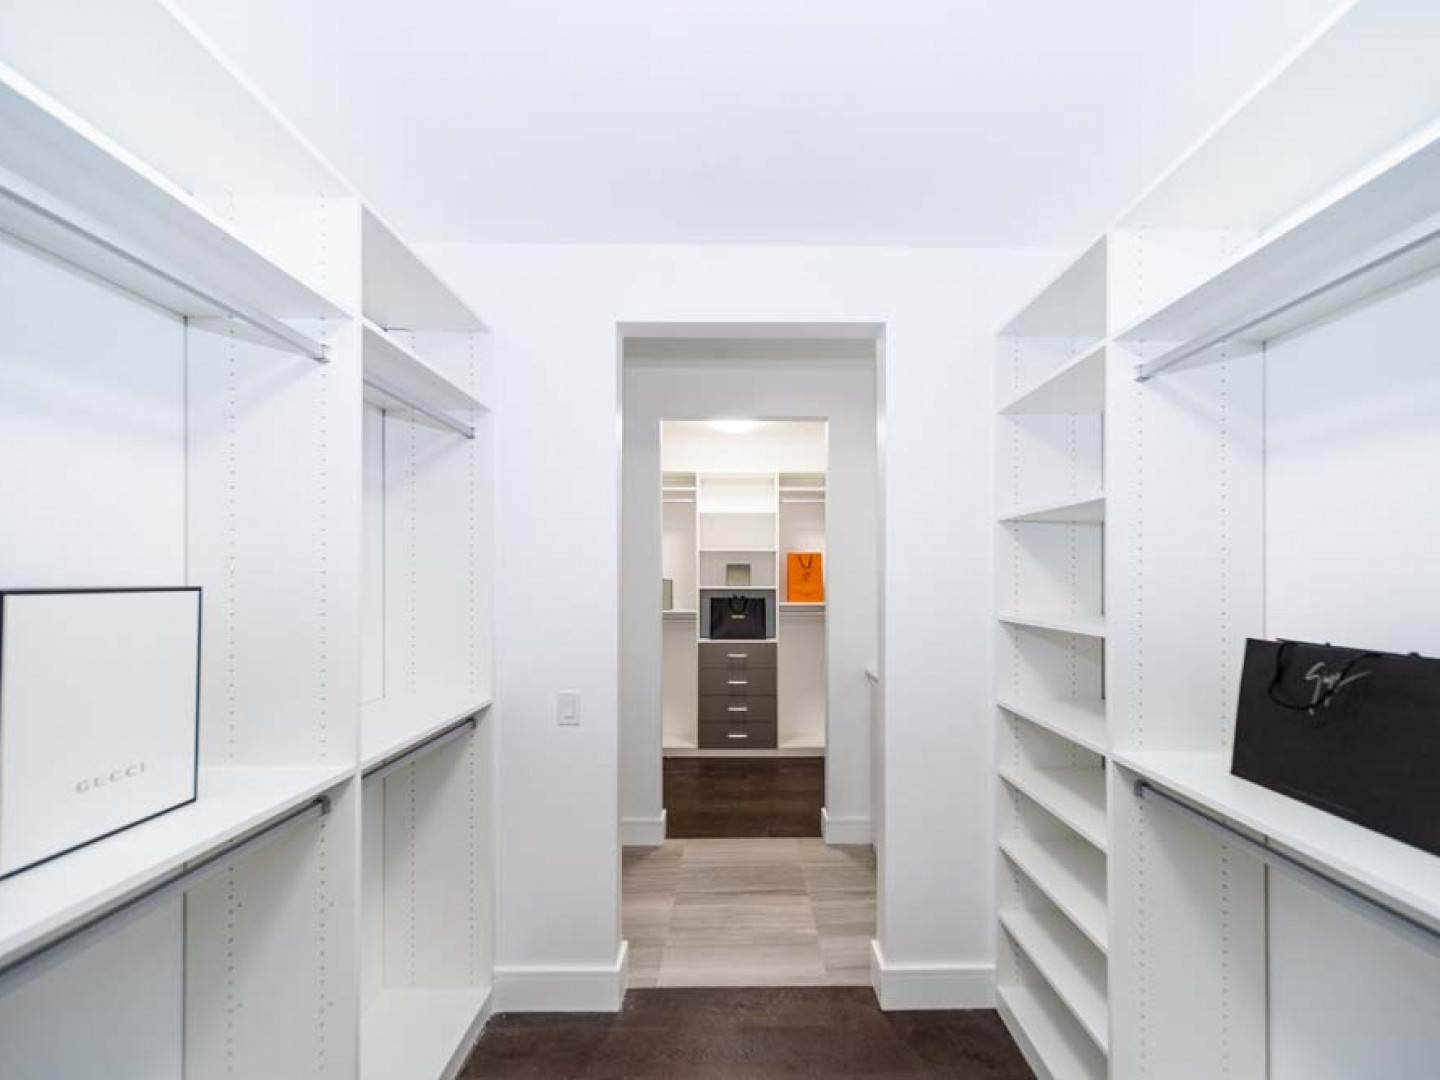 Find Storage Solutions for Your Home